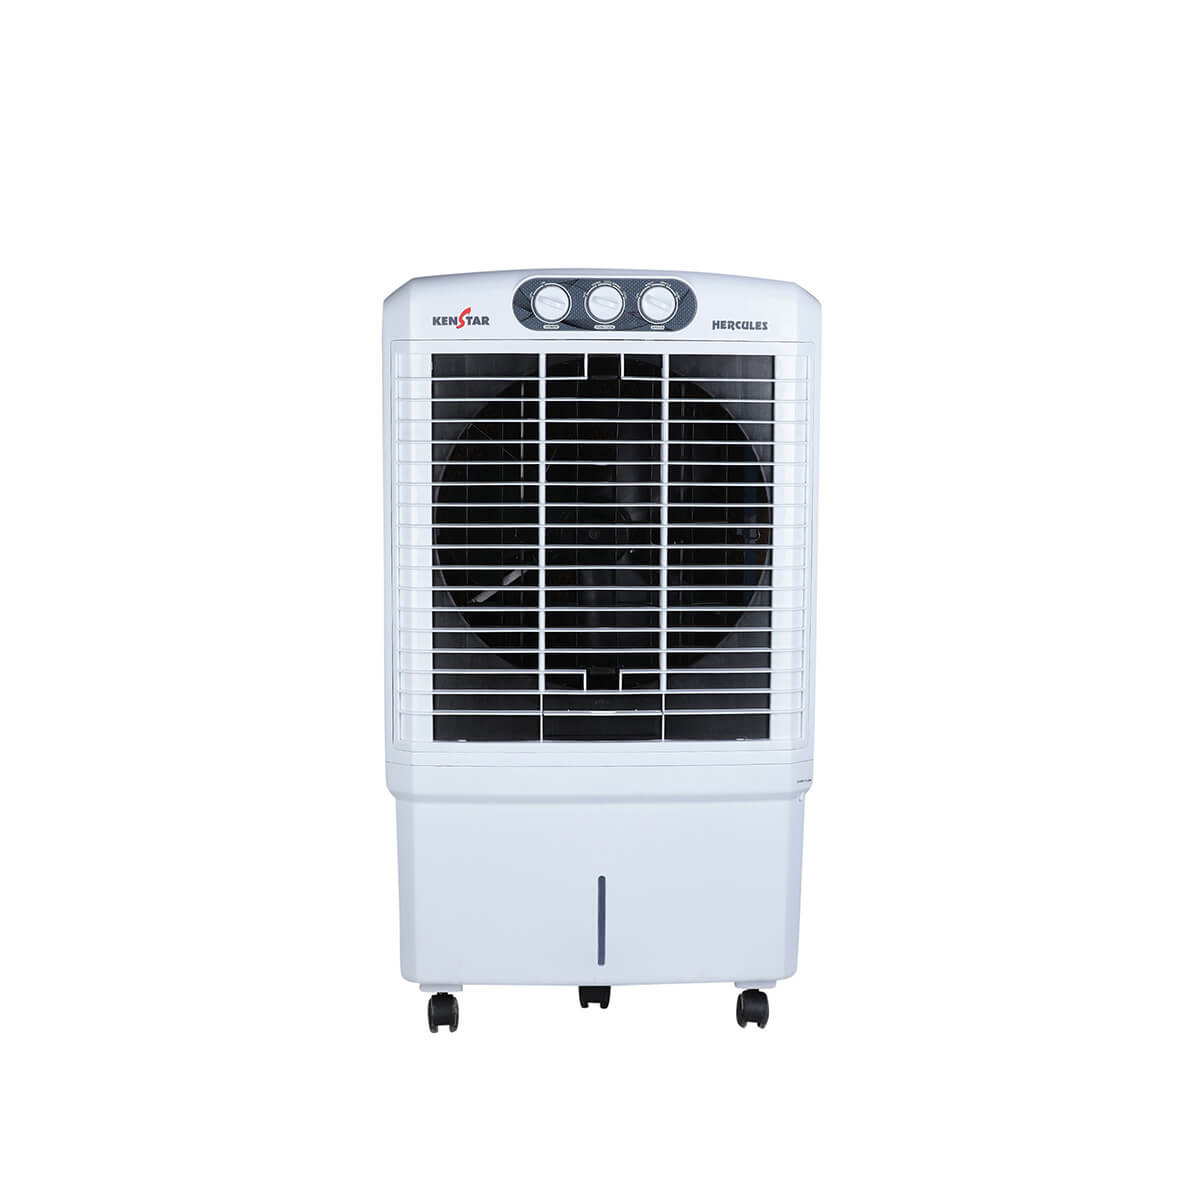 Beat the heat with these branded air coolers